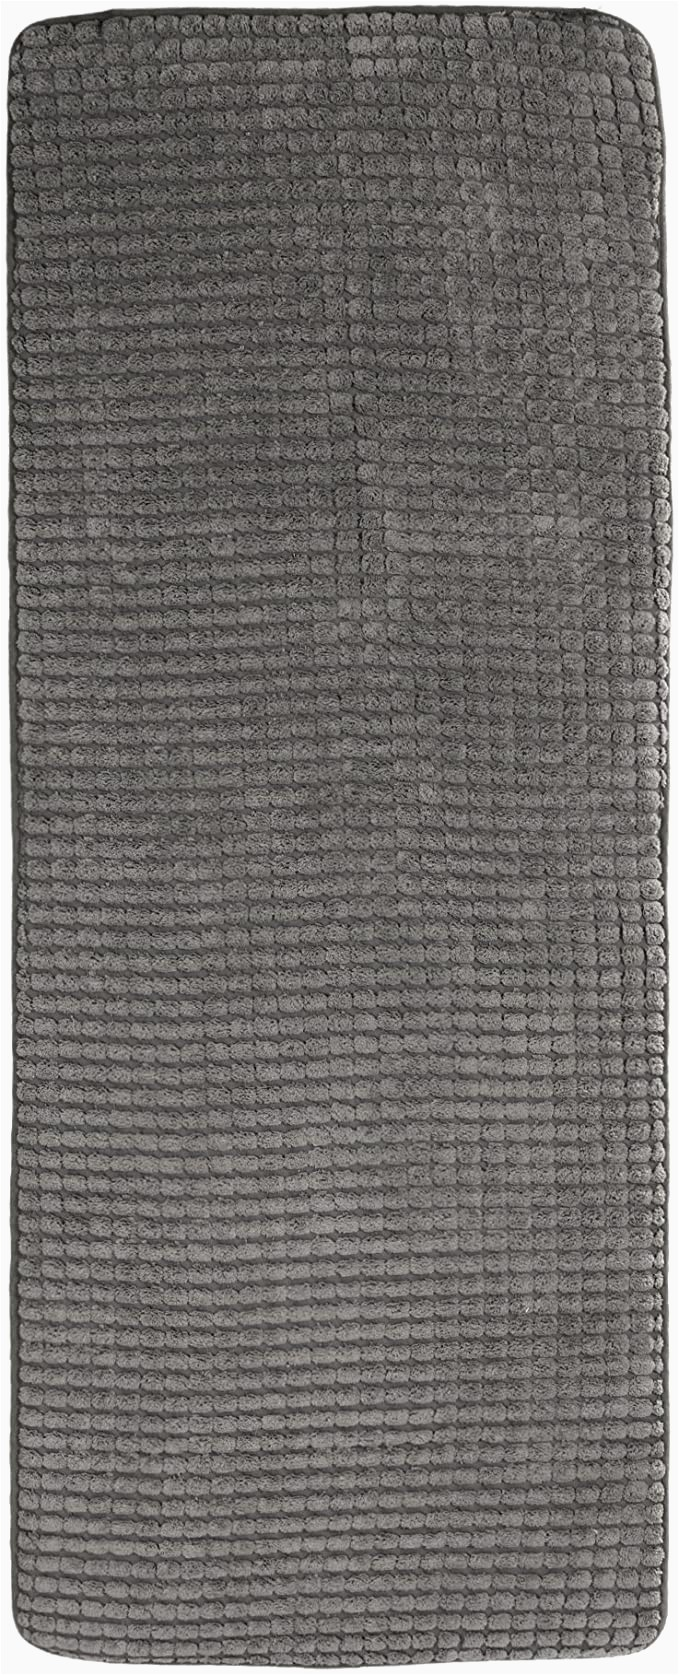 "24 X 60 Memory Foam Bath Rug 24""x59"" Memory Foam Extra Long Bath Mat by Lavish Home Woven Jacquard Fleece Platinum"